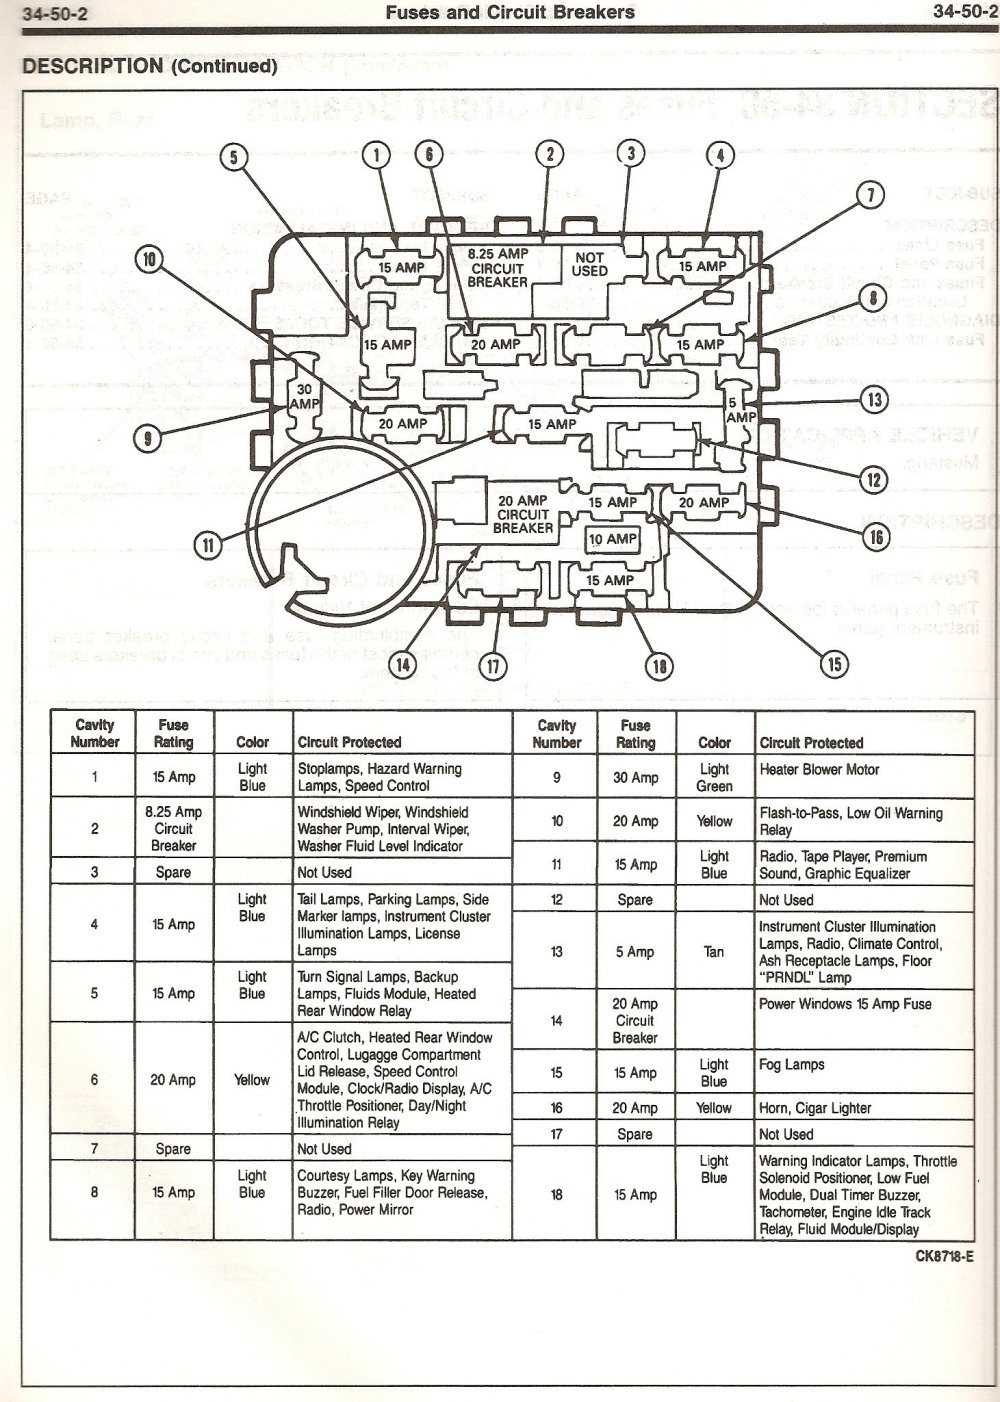 medium resolution of wiring diagram for 1993 dodge dakota 4x4 electrical wiring diagram87 dodge dakota fuse diagram library wiring